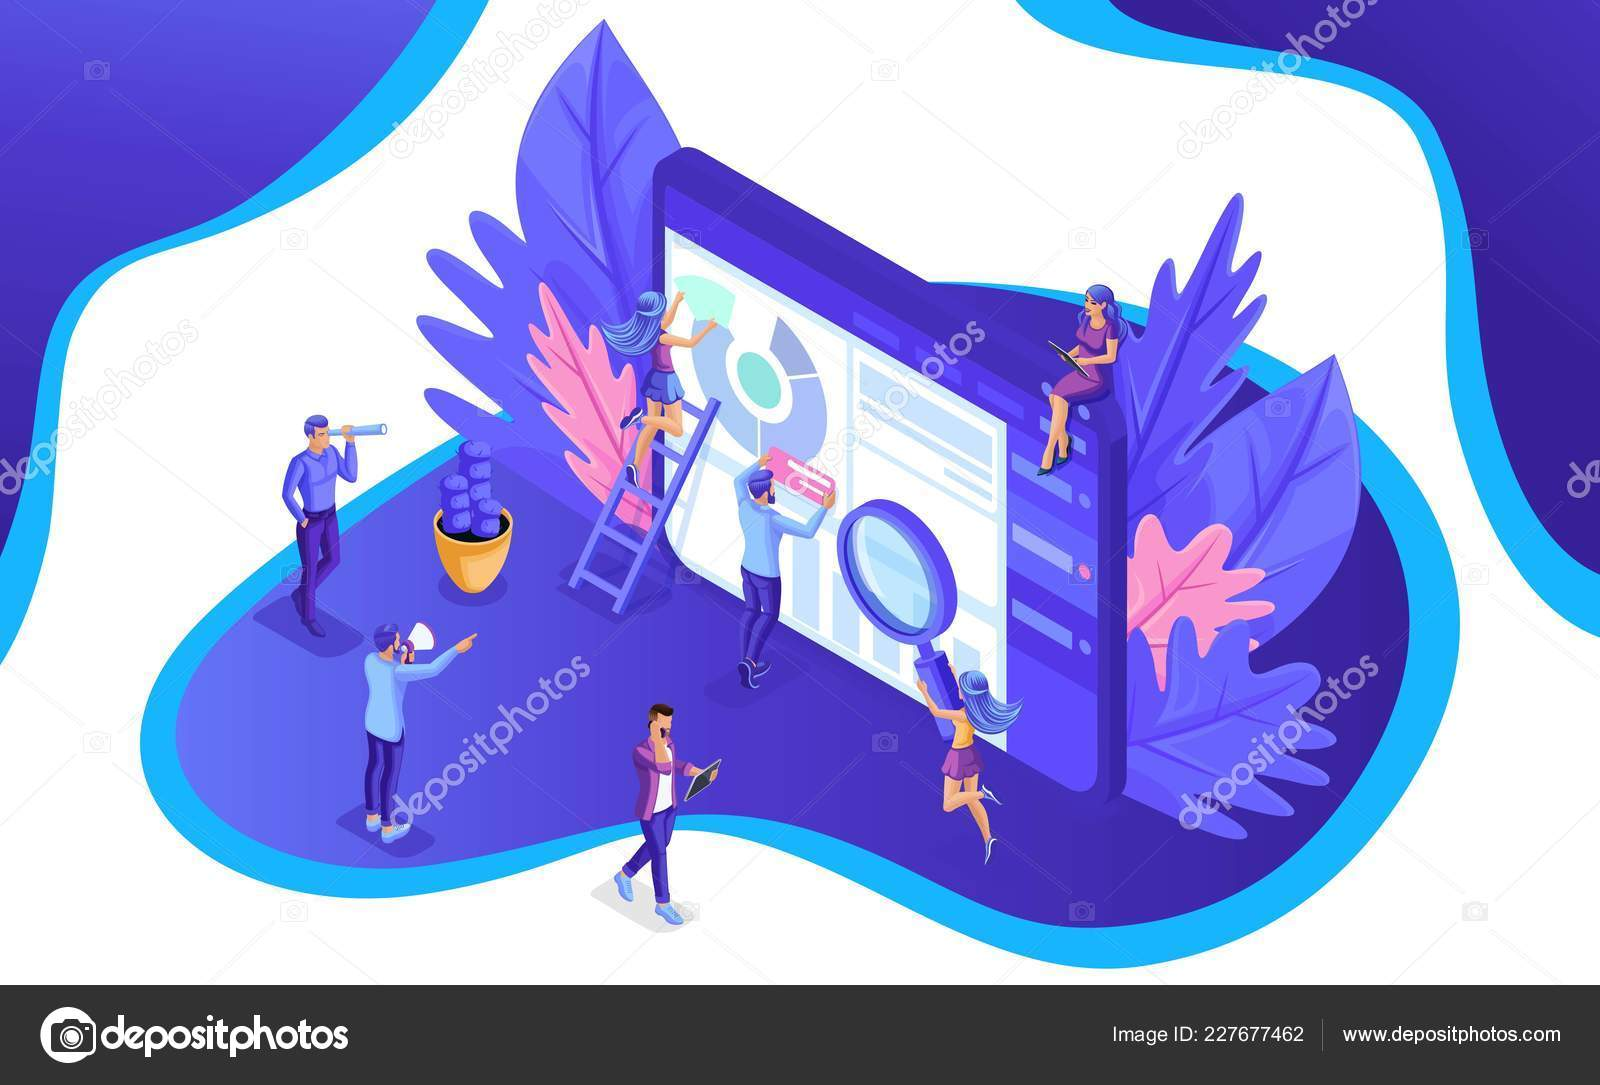 isometric team of specialists working on digital marketing strategy landing page digital marketing vector illustration stock vector c elizaliv 227677462 https depositphotos com 227677462 stock illustration isometric team of specialists working html